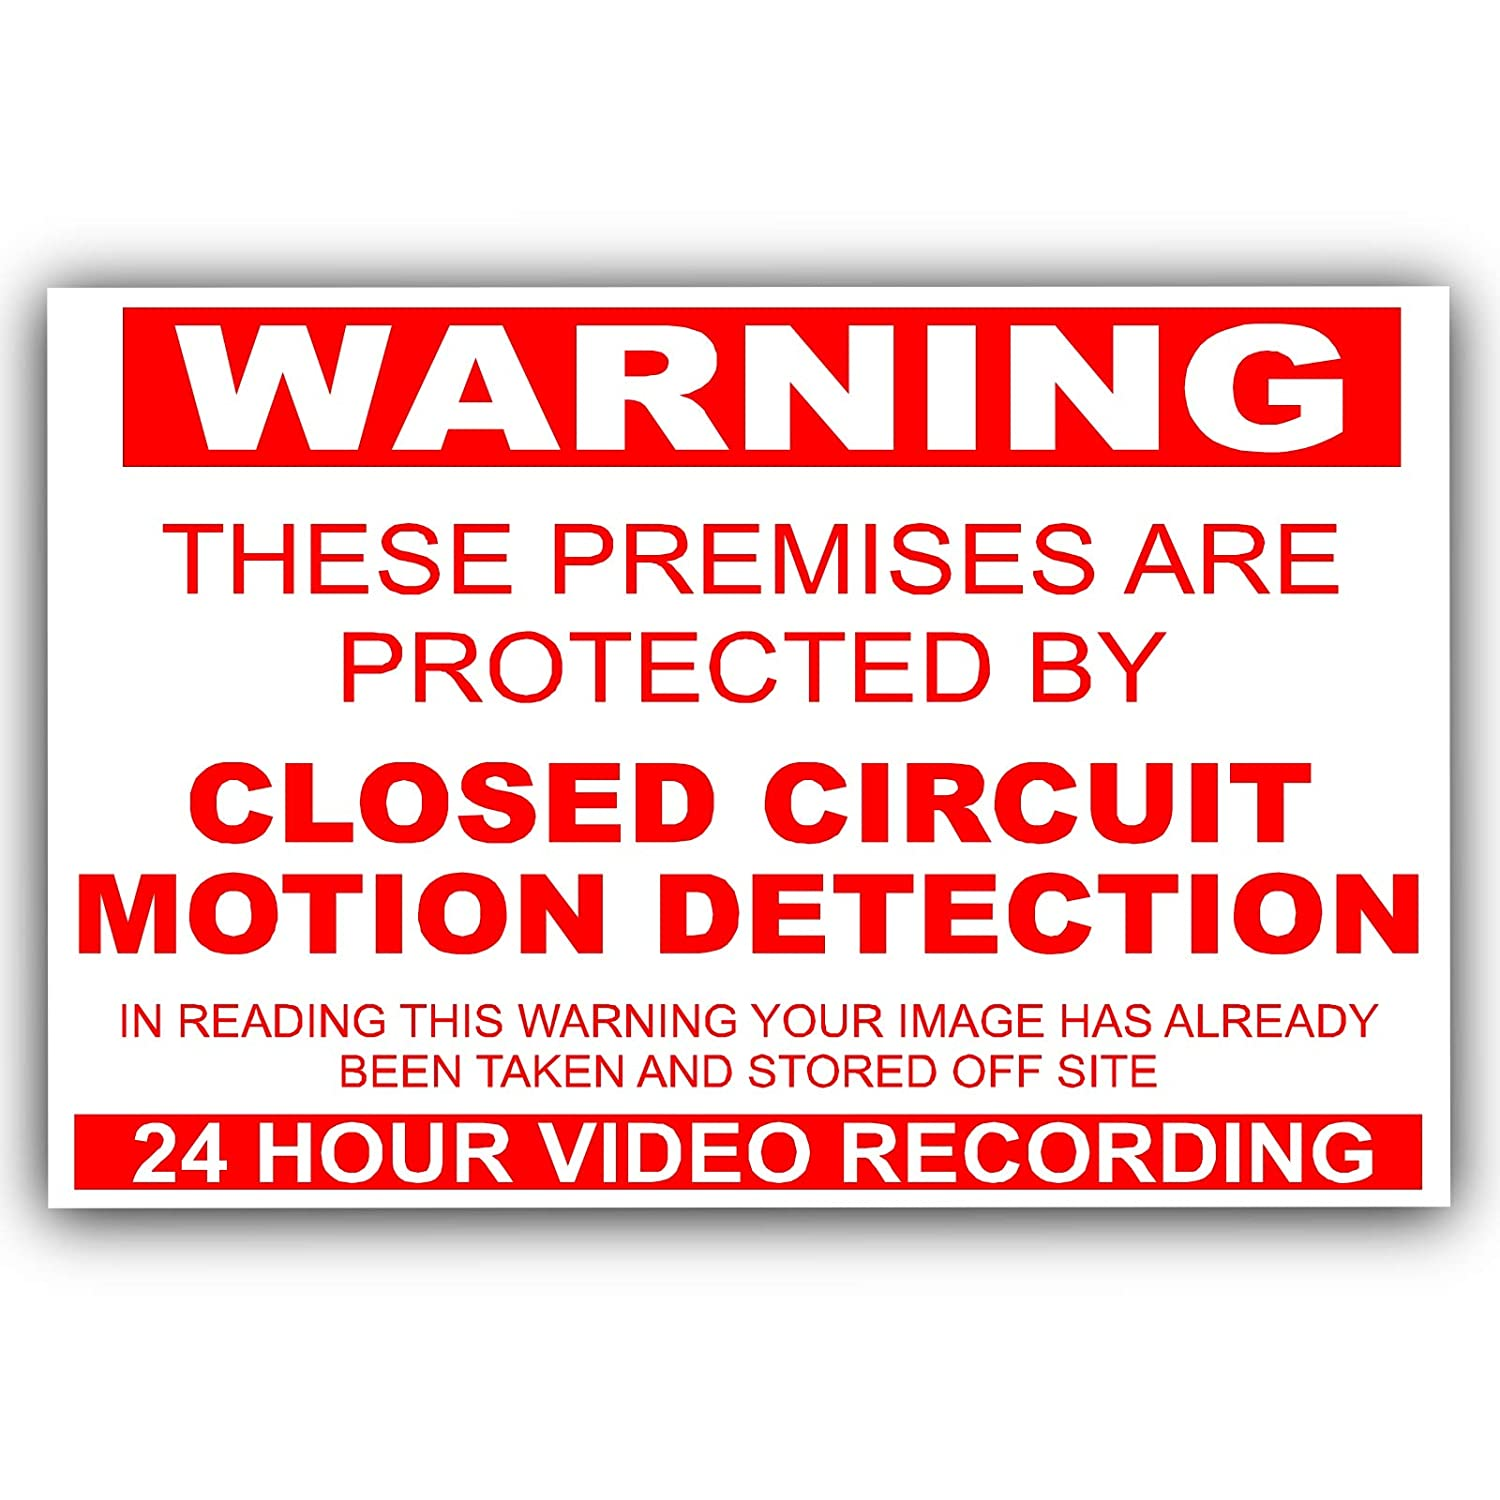 Platinum Place 6 x EXTERNAL-Premises Protected by MOTION DETECTION Closed Circuit CCTV Stickers-Red on White-130mm x 87mm-Worded-Video Recording Camera Security Warning Signs-Self Adhesive Vinyl